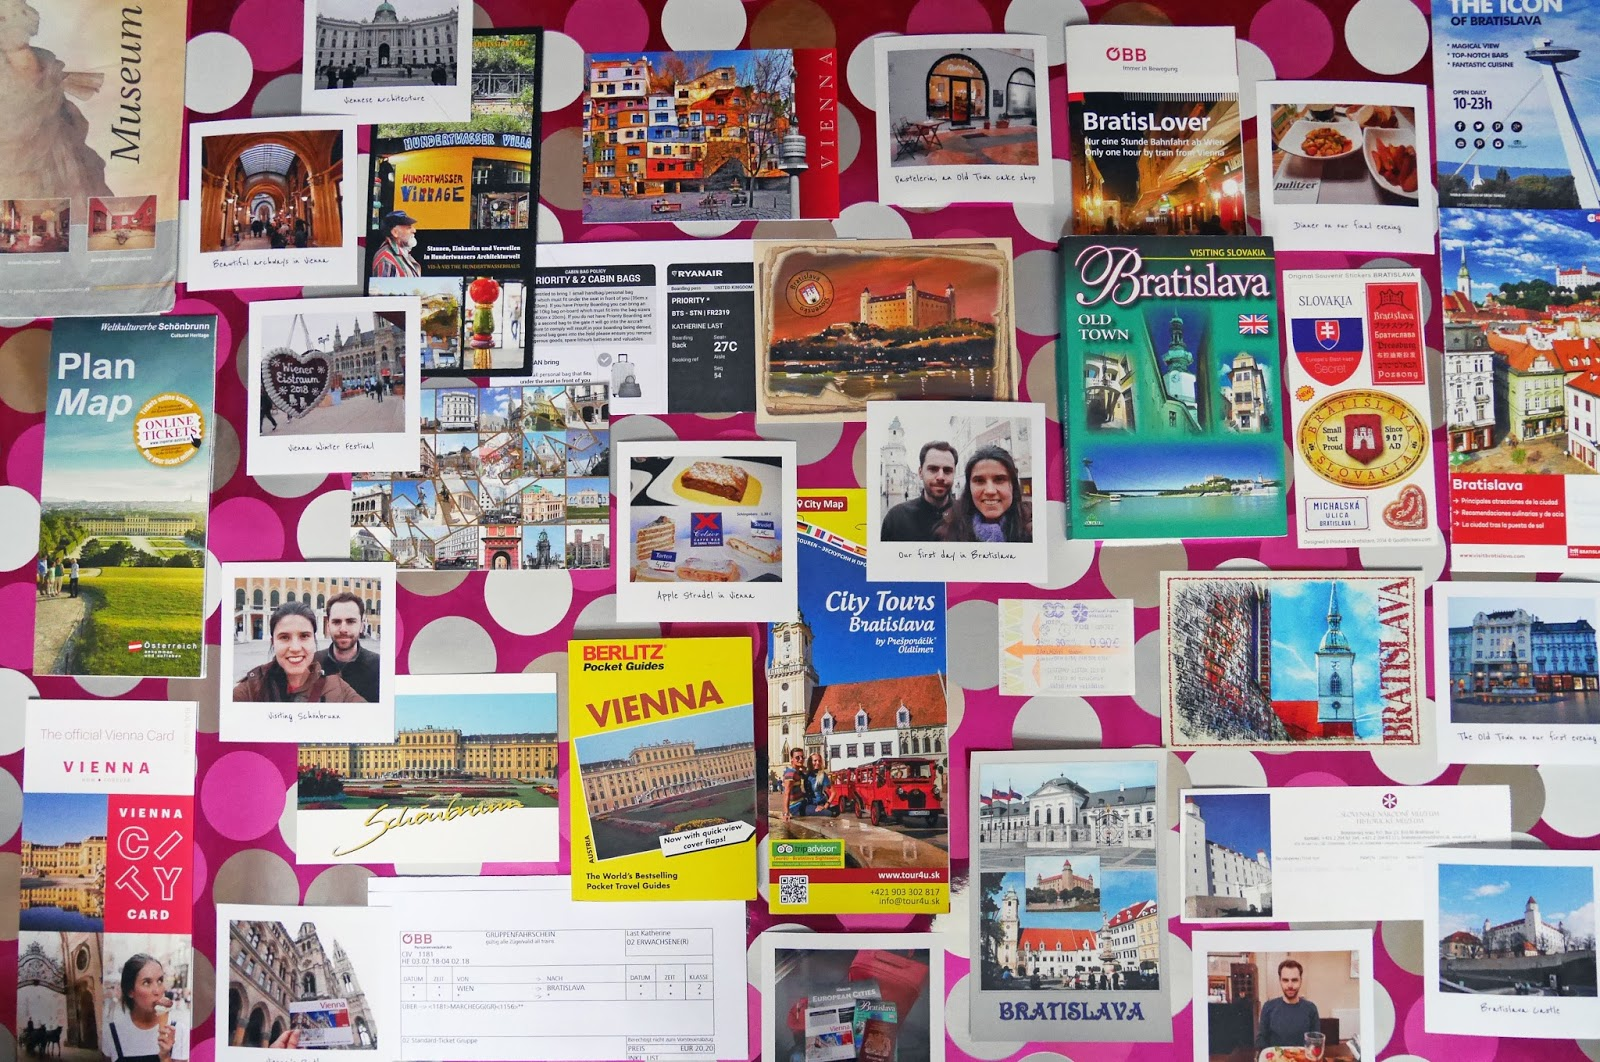 Bratislava and Vienna travel scrapbook materials